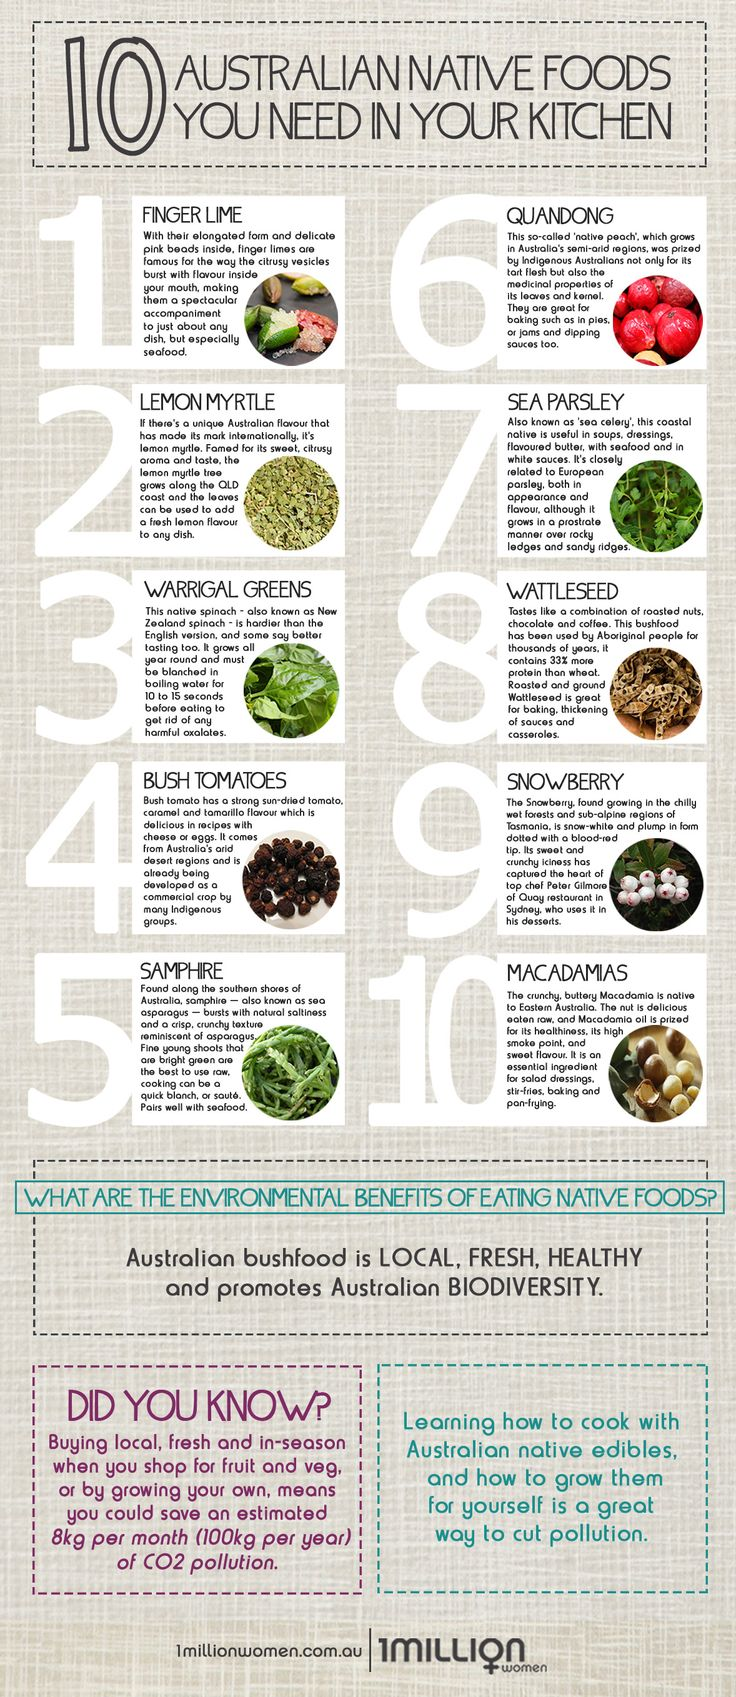 [INFOGRAPHIC] Top 10 Native Australian Foods You Need In Your Kitchen | 1 Million Women